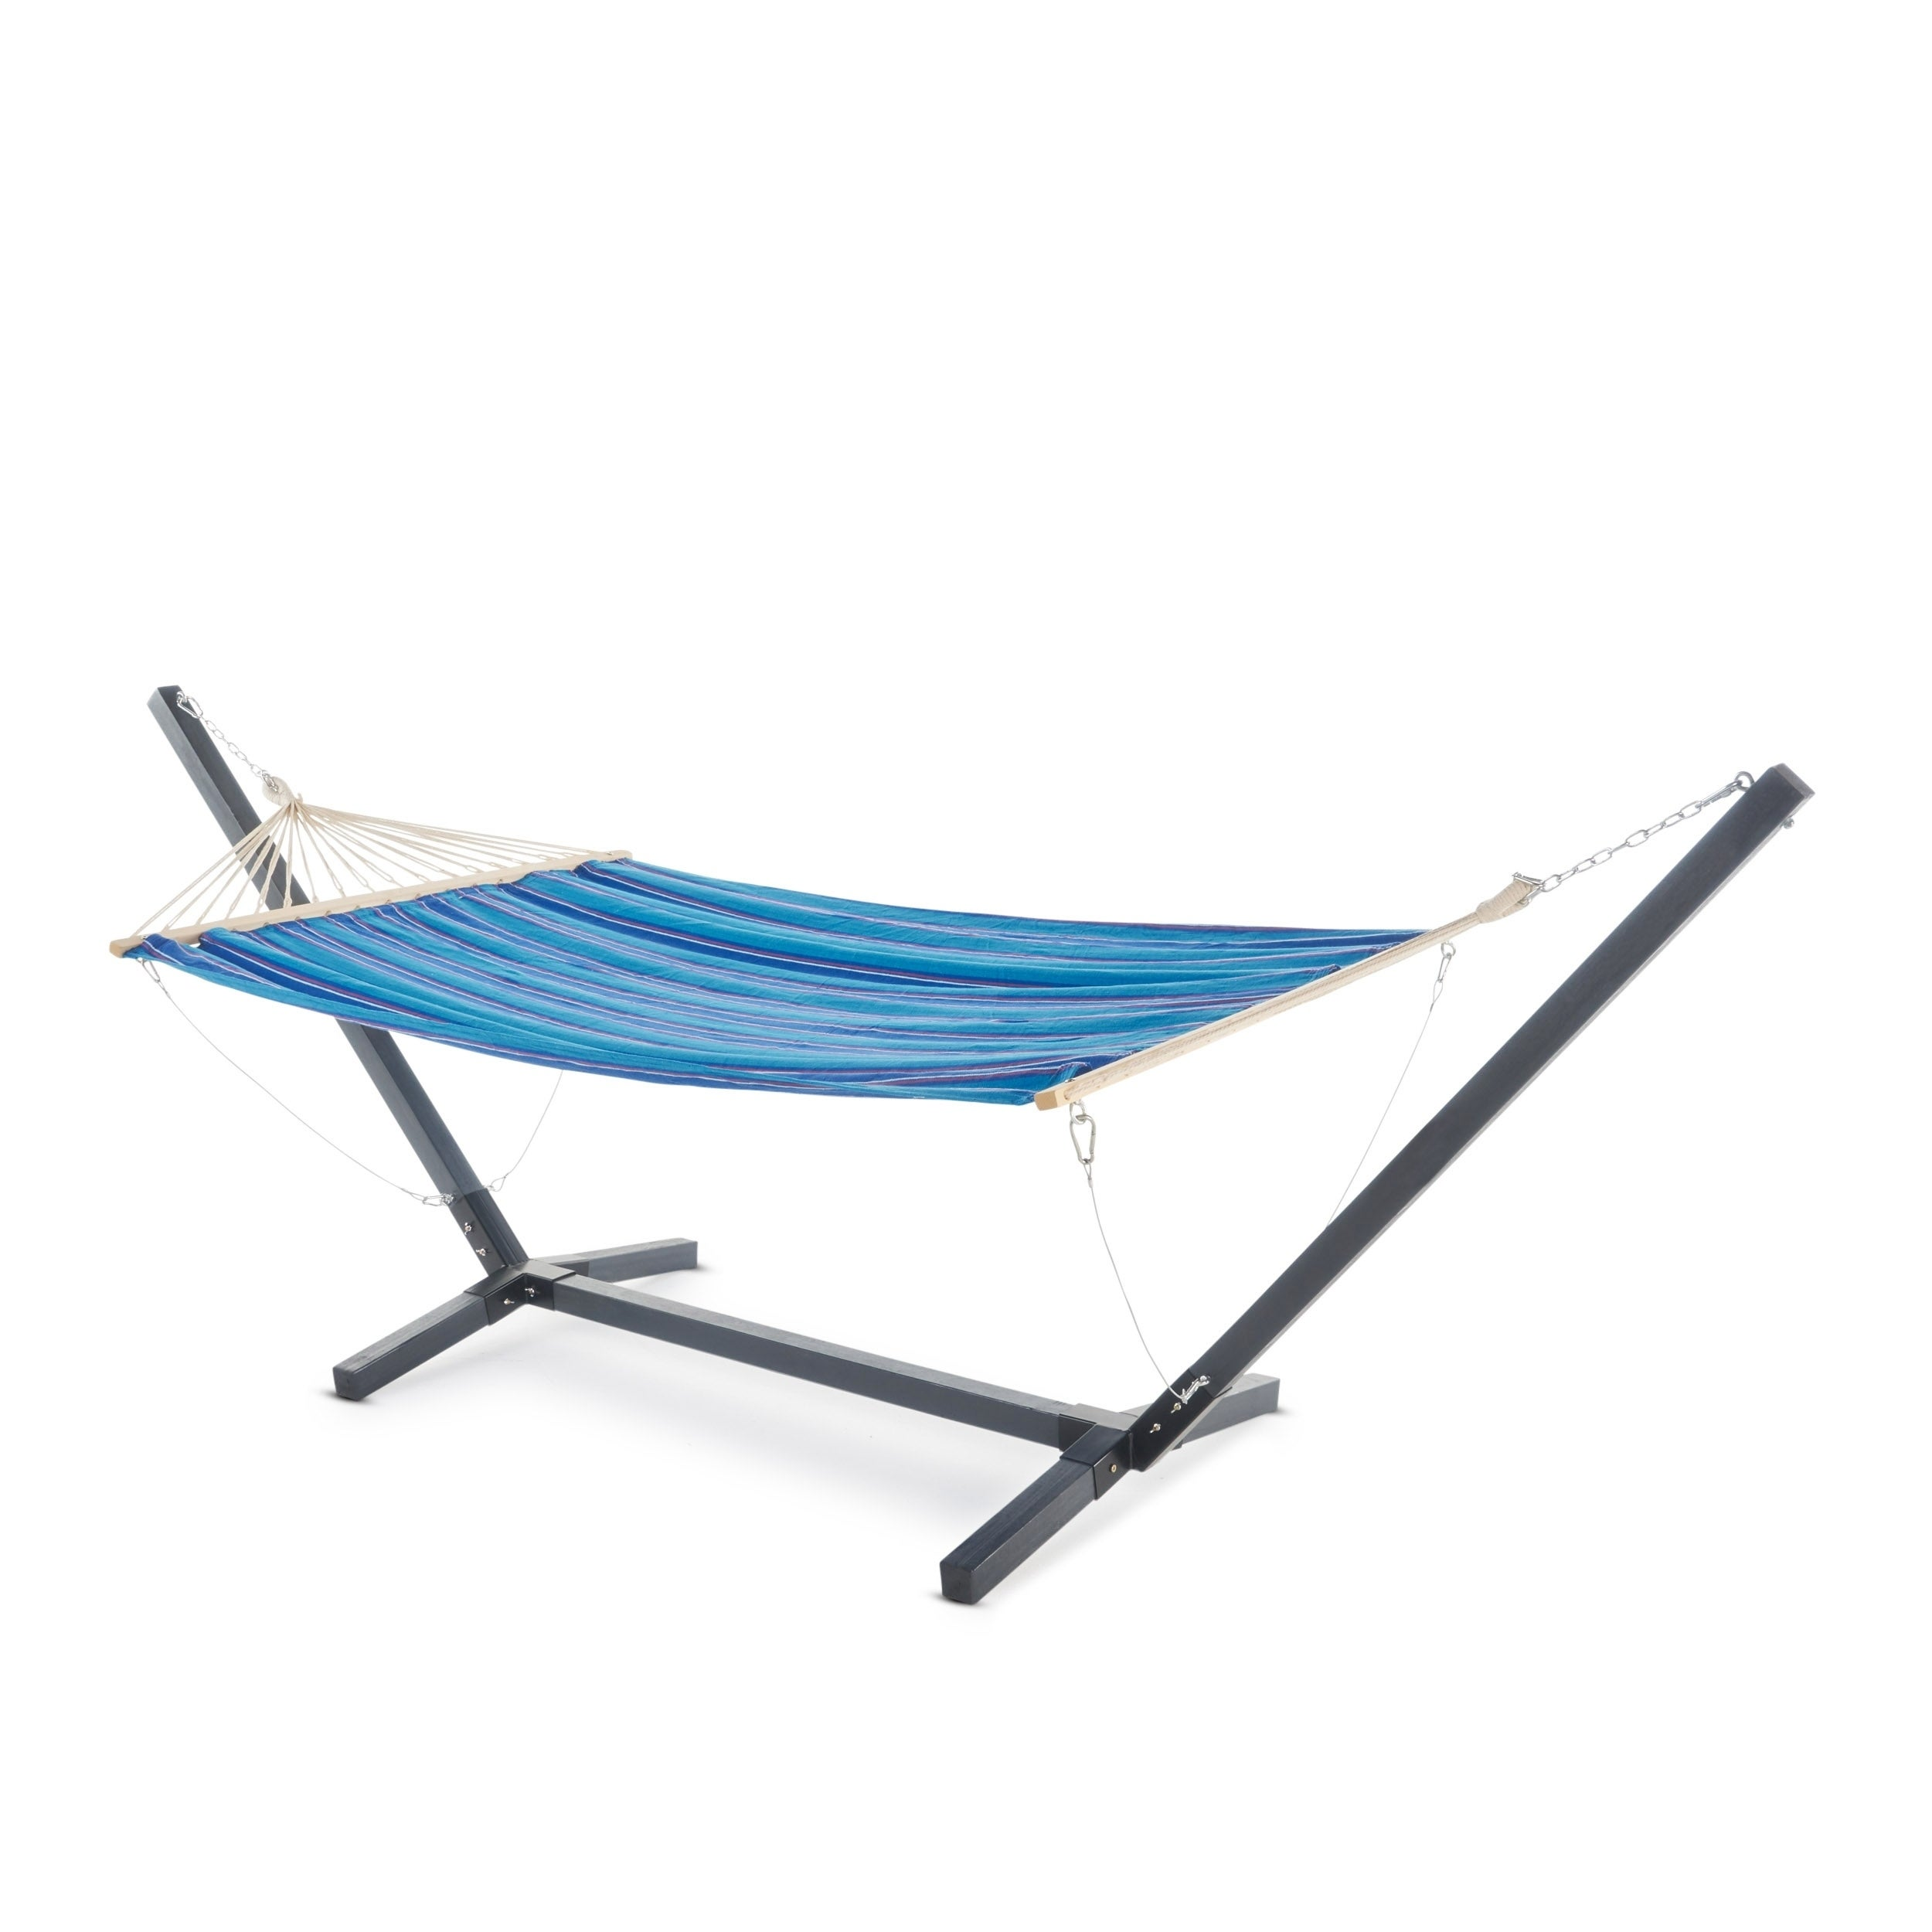 Terrific Aspen Outdoor Water Resistant Hammock With Grey Larch Wood Frame By Christopher Knight Home N A Gmtry Best Dining Table And Chair Ideas Images Gmtryco